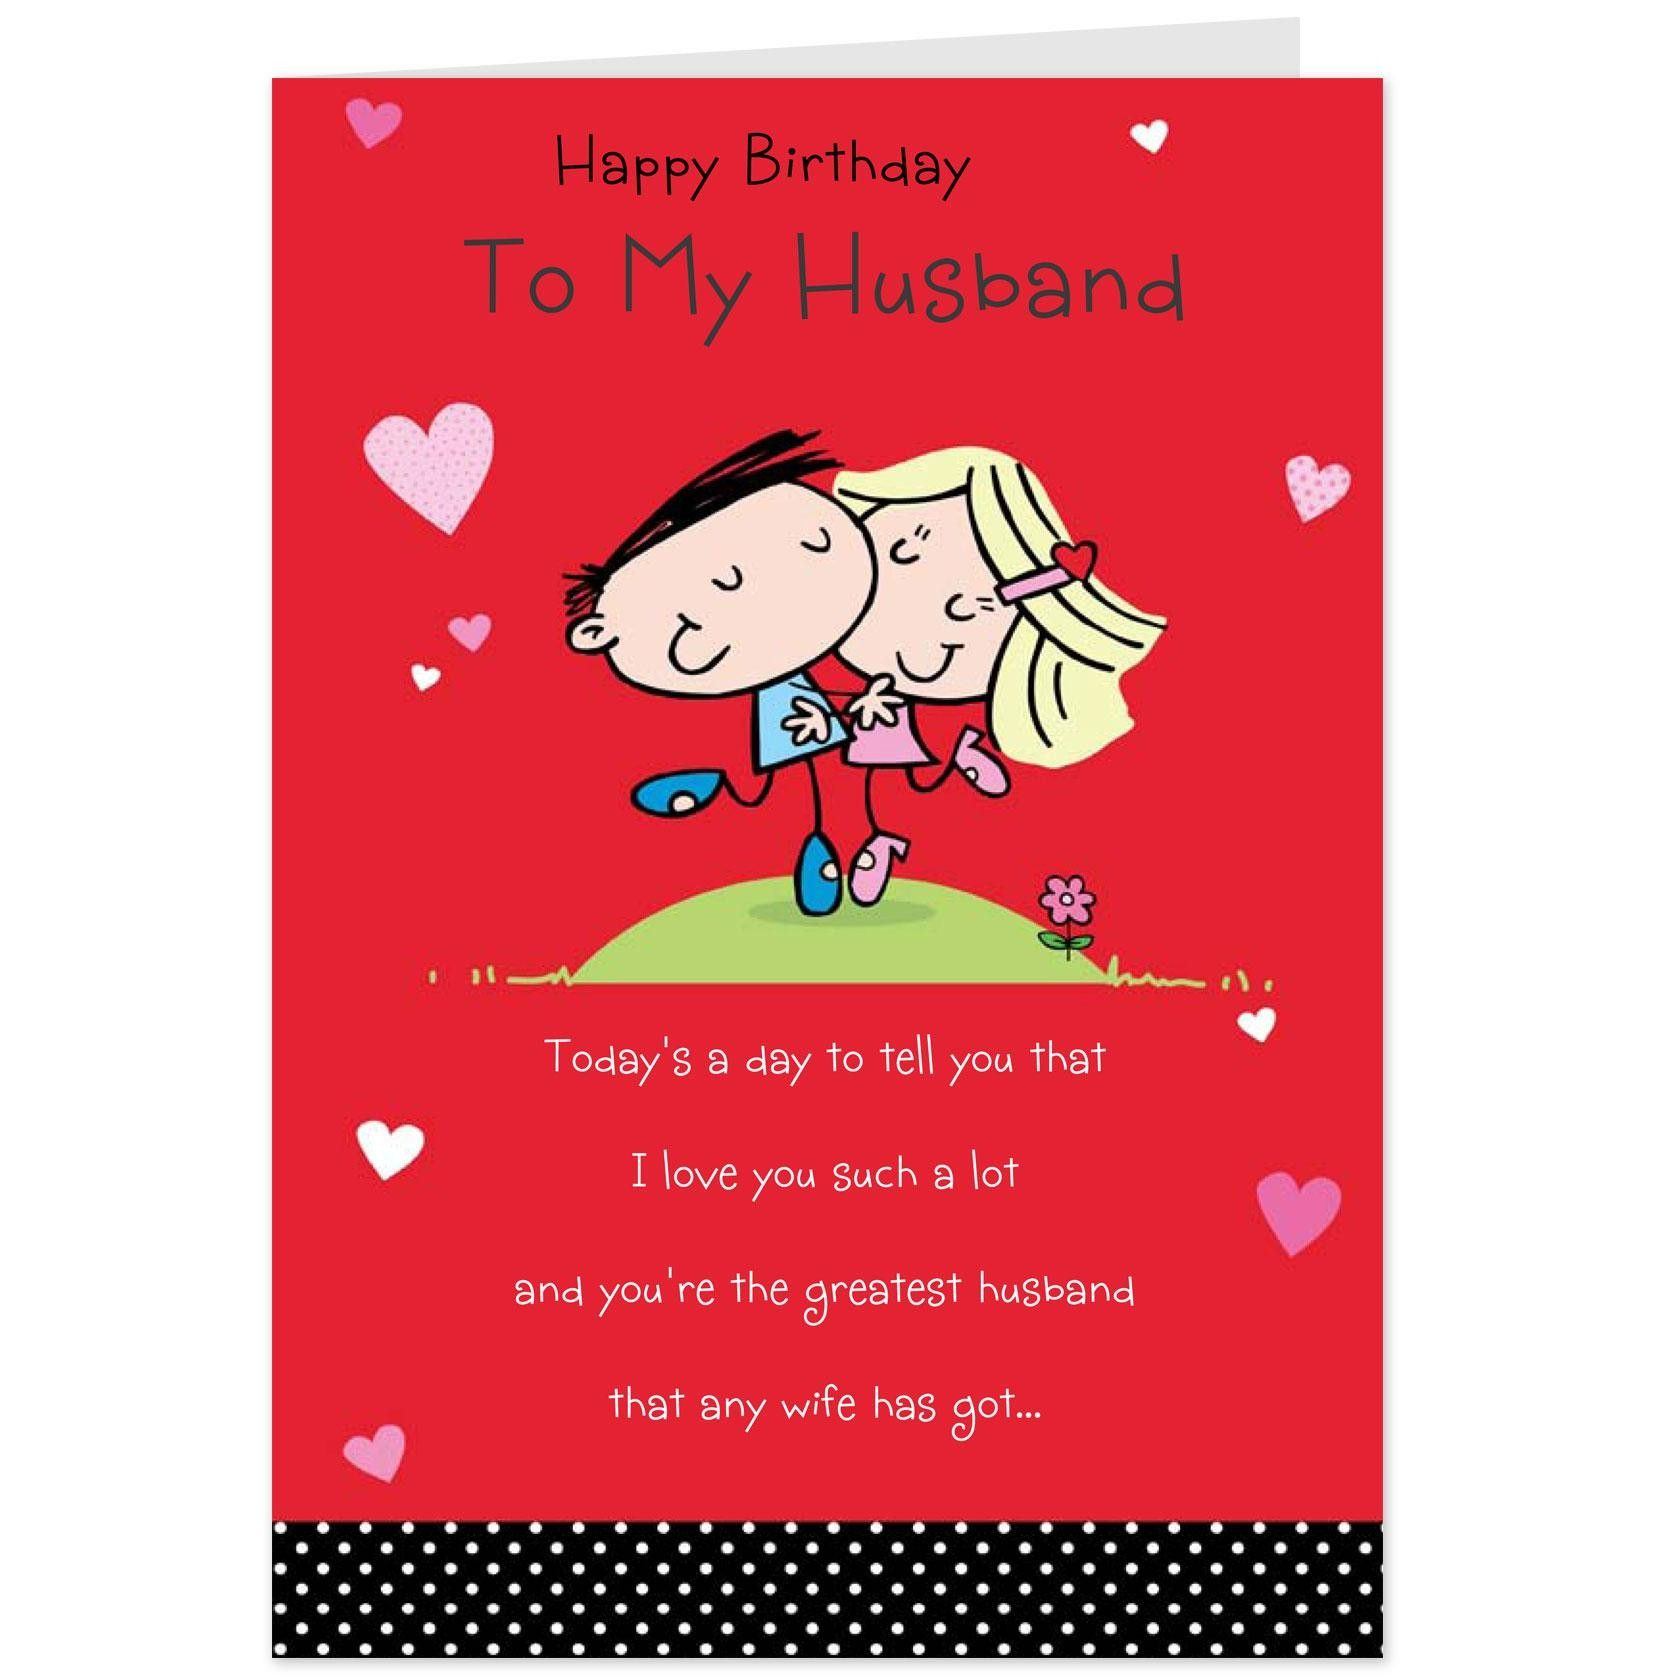 happy birthday images.20 Ideas for Funny Birthday Wishes